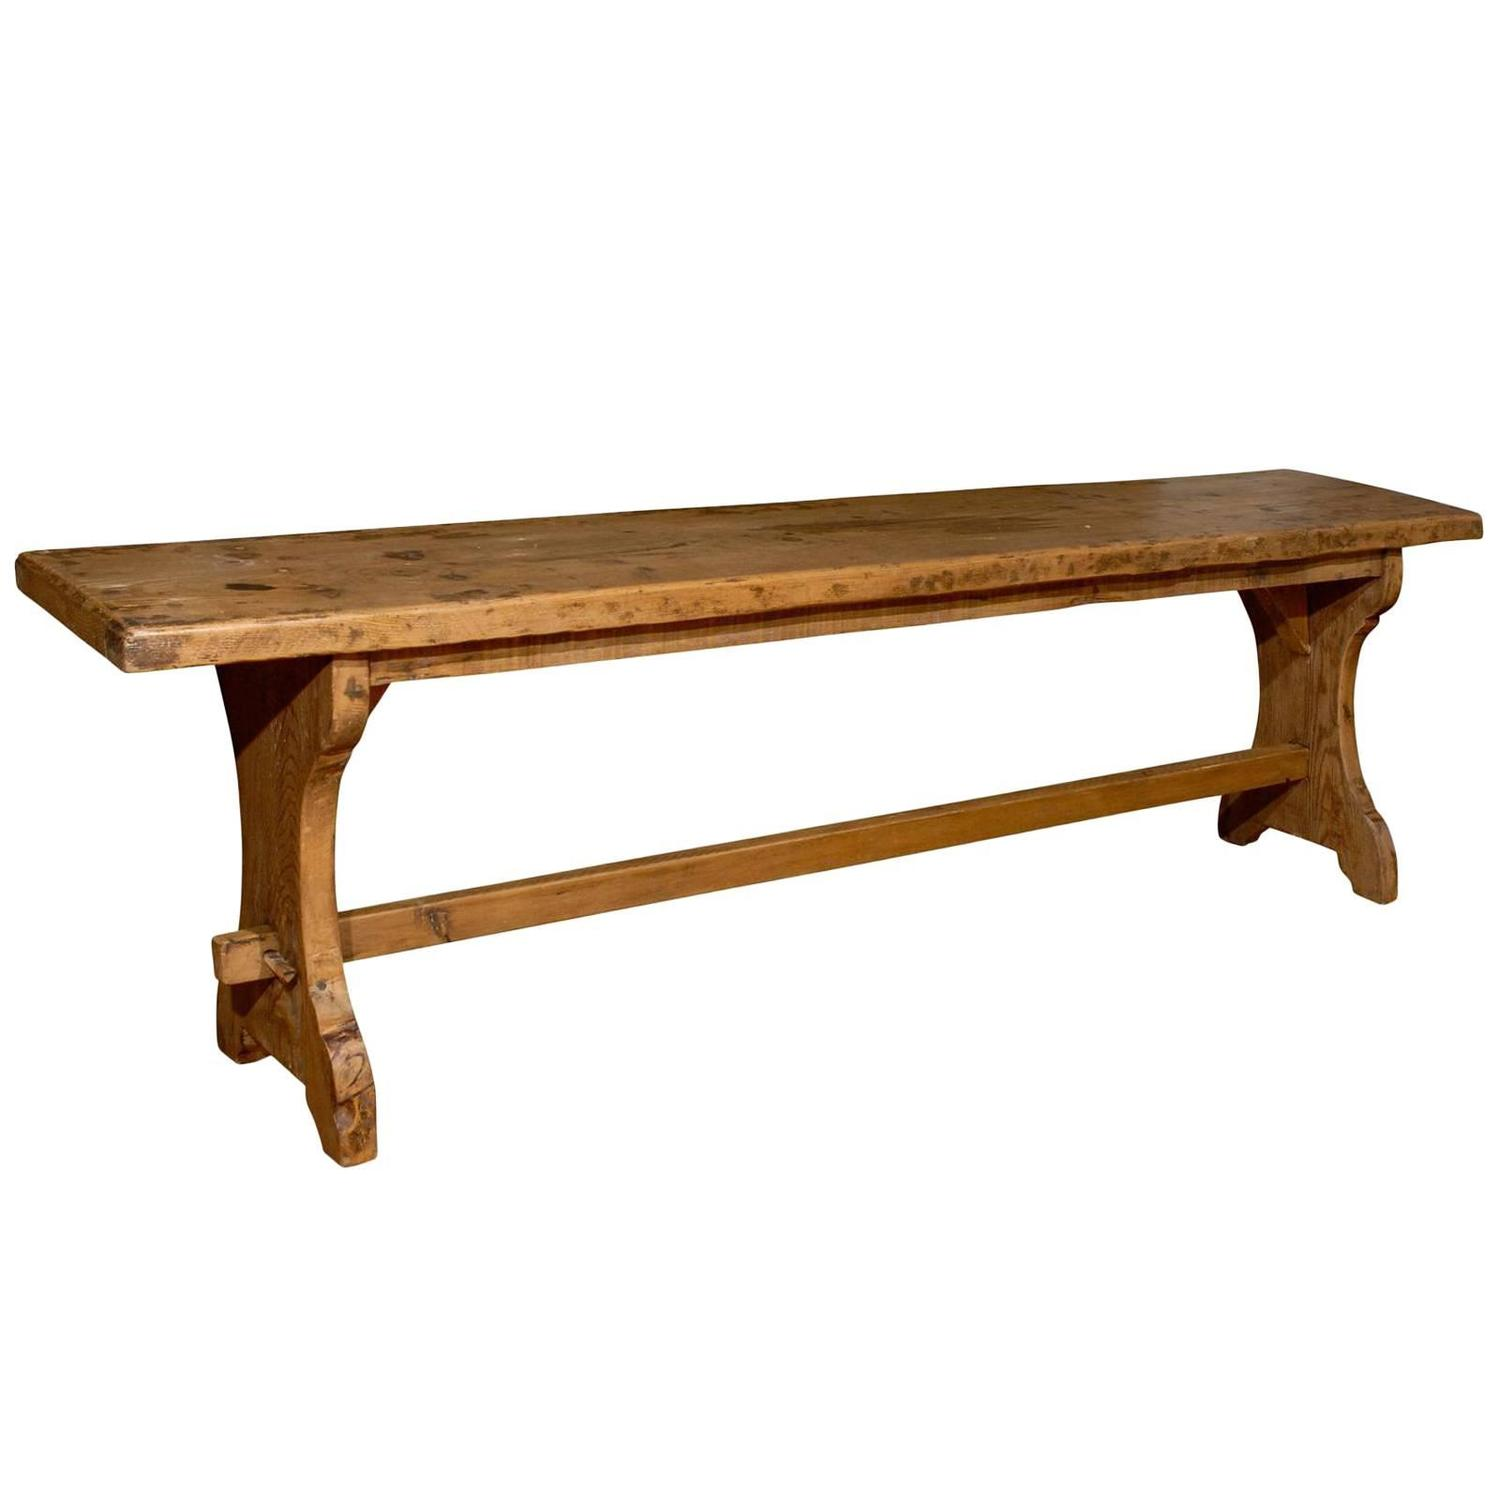 Long Benches For Sale 28 Images Set Of Six Long Wooden Benches For Sale At 1stdibs Long